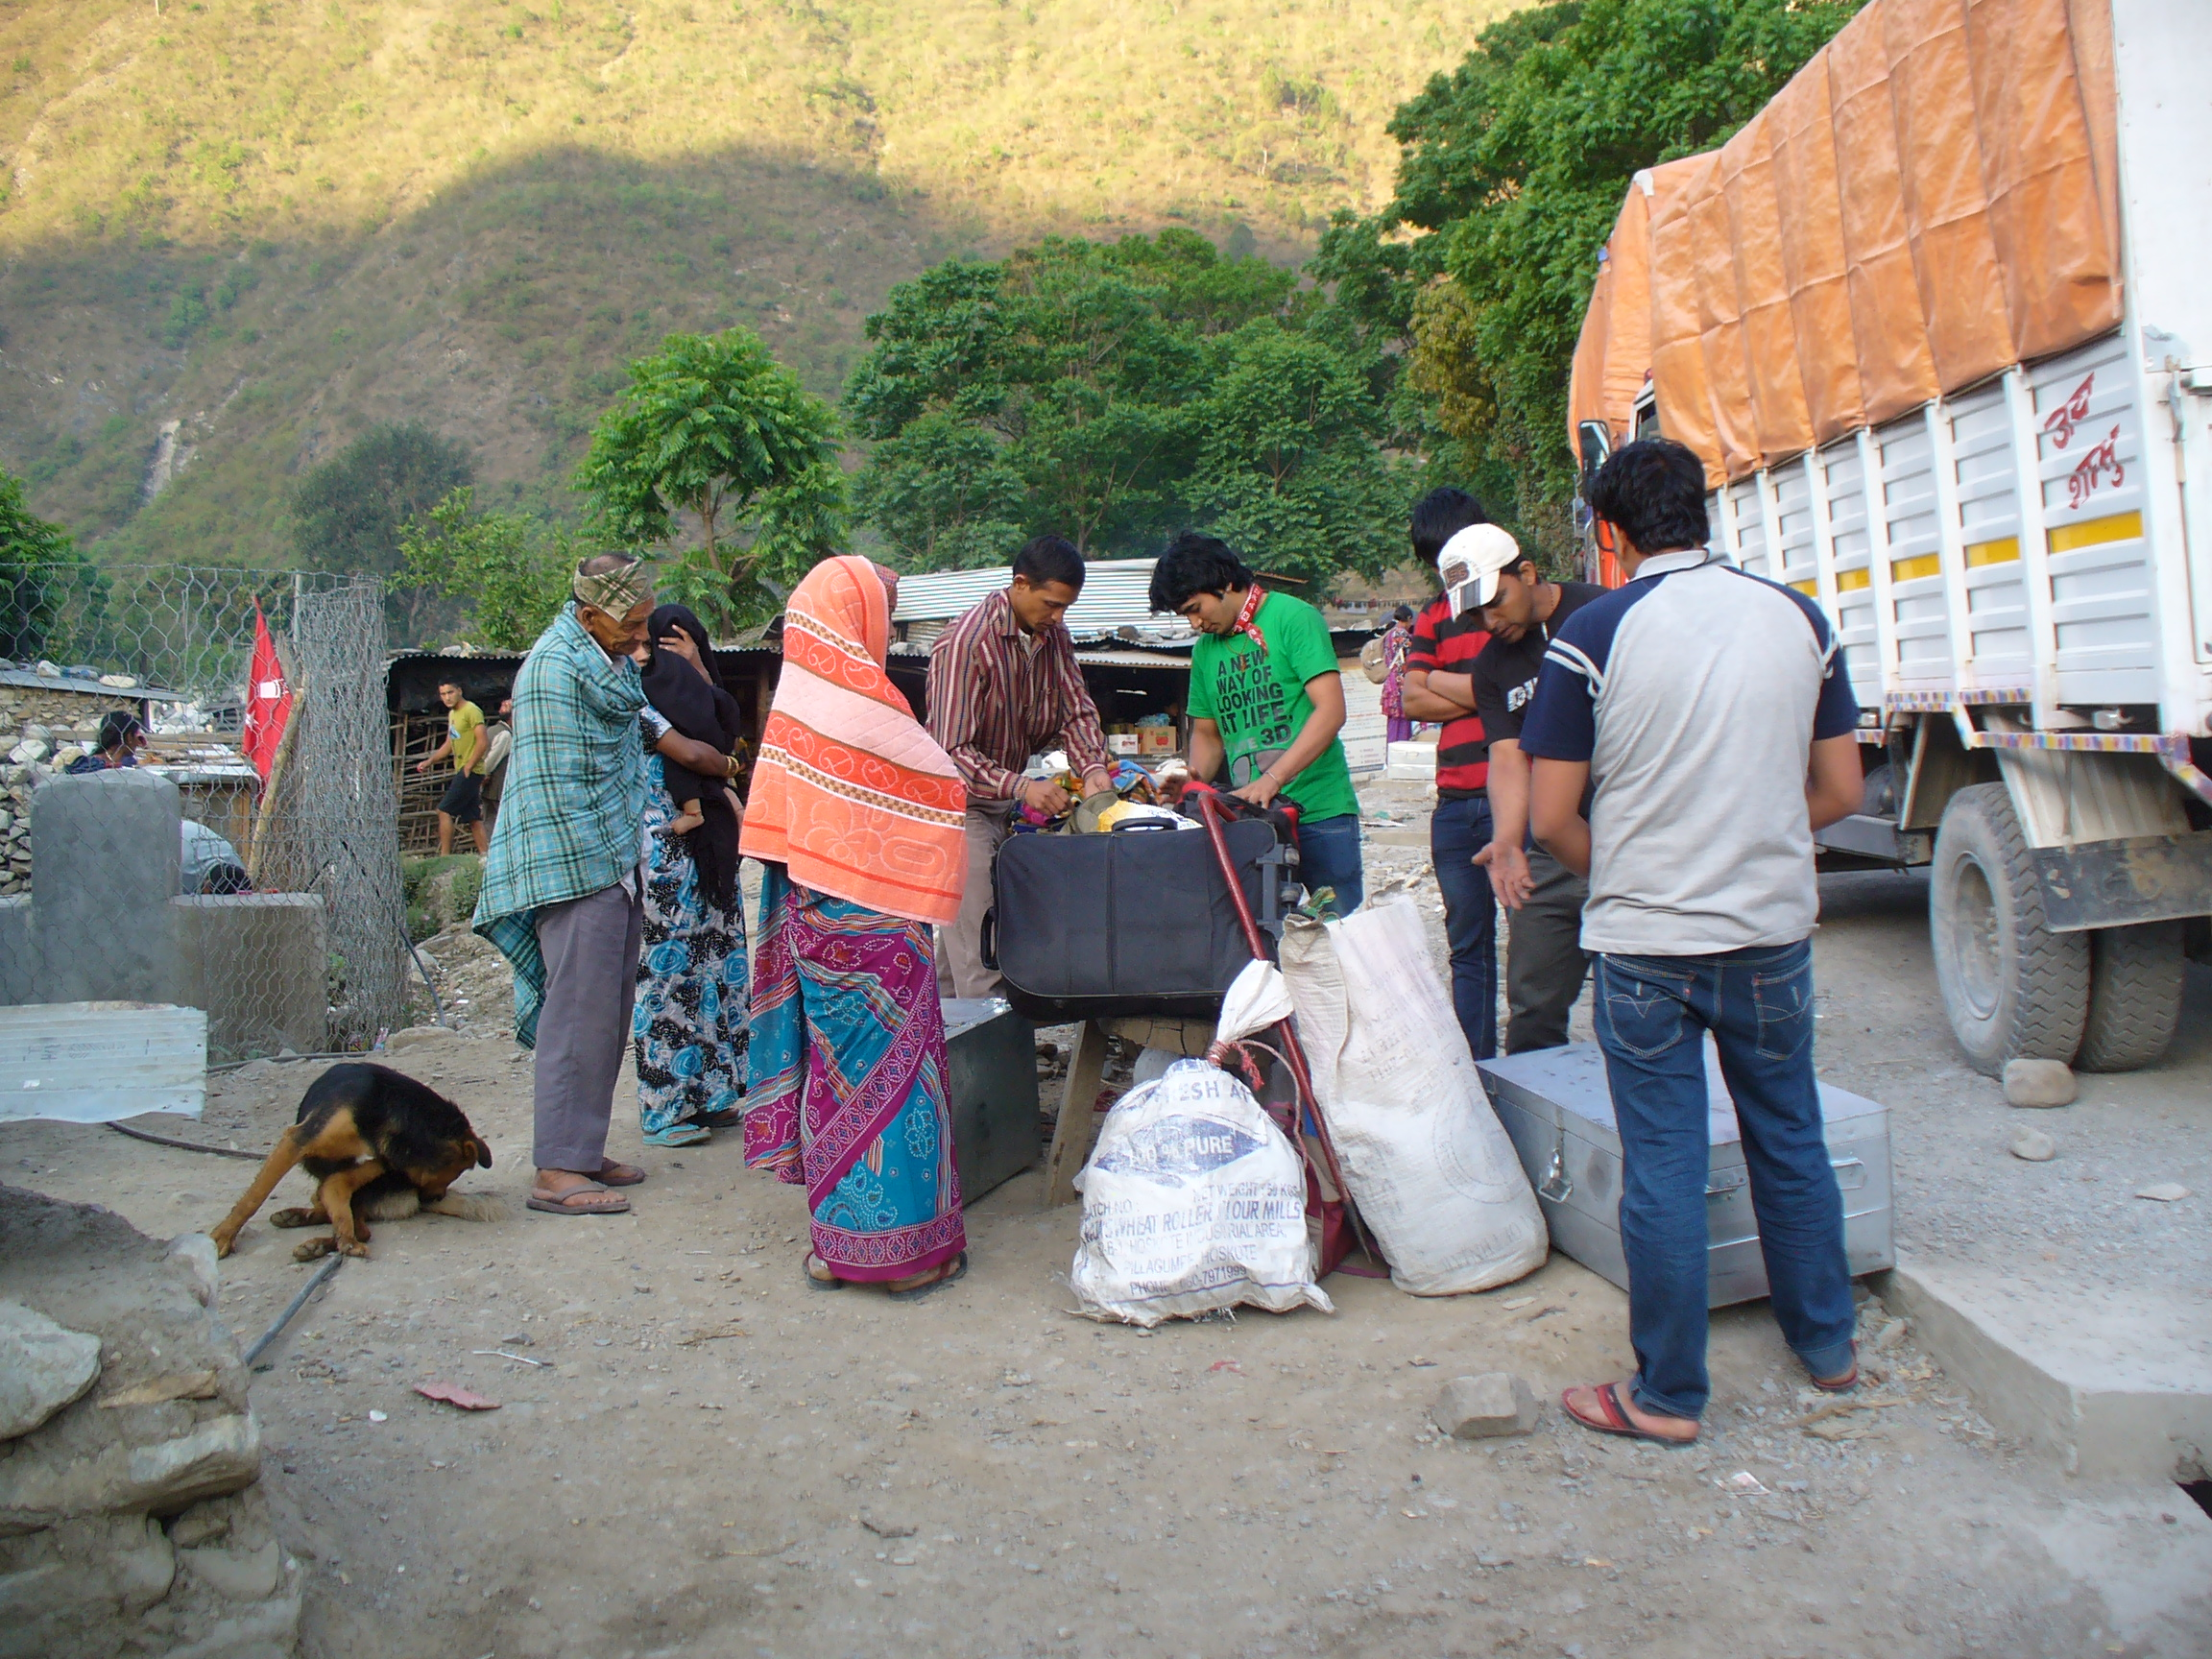 Deura, Bajhang district: Group of Nepali migrants coming back from Bangalore sort out their luggage after deboarding the overnight bus.